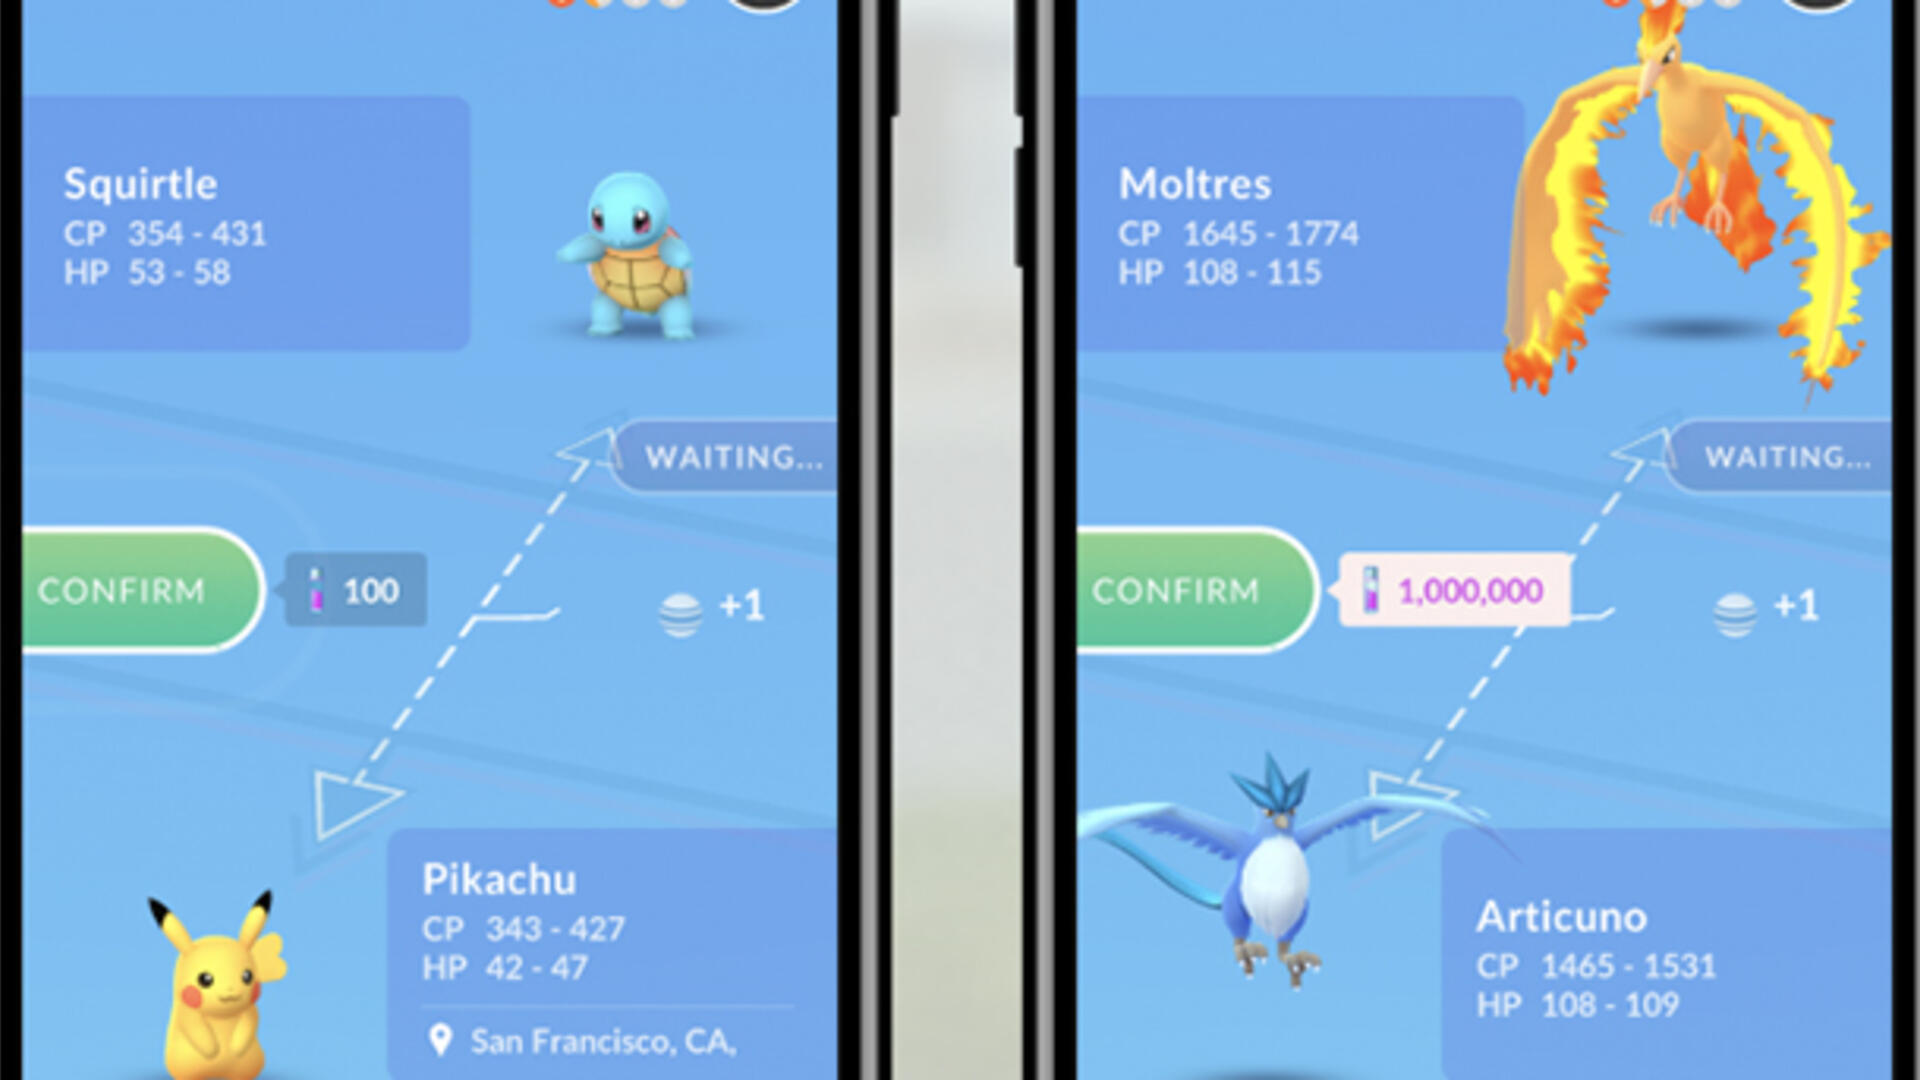 Pokemon Go Trading Update Gave Game's Daily Revenue a Shot in the Arm(aldo)